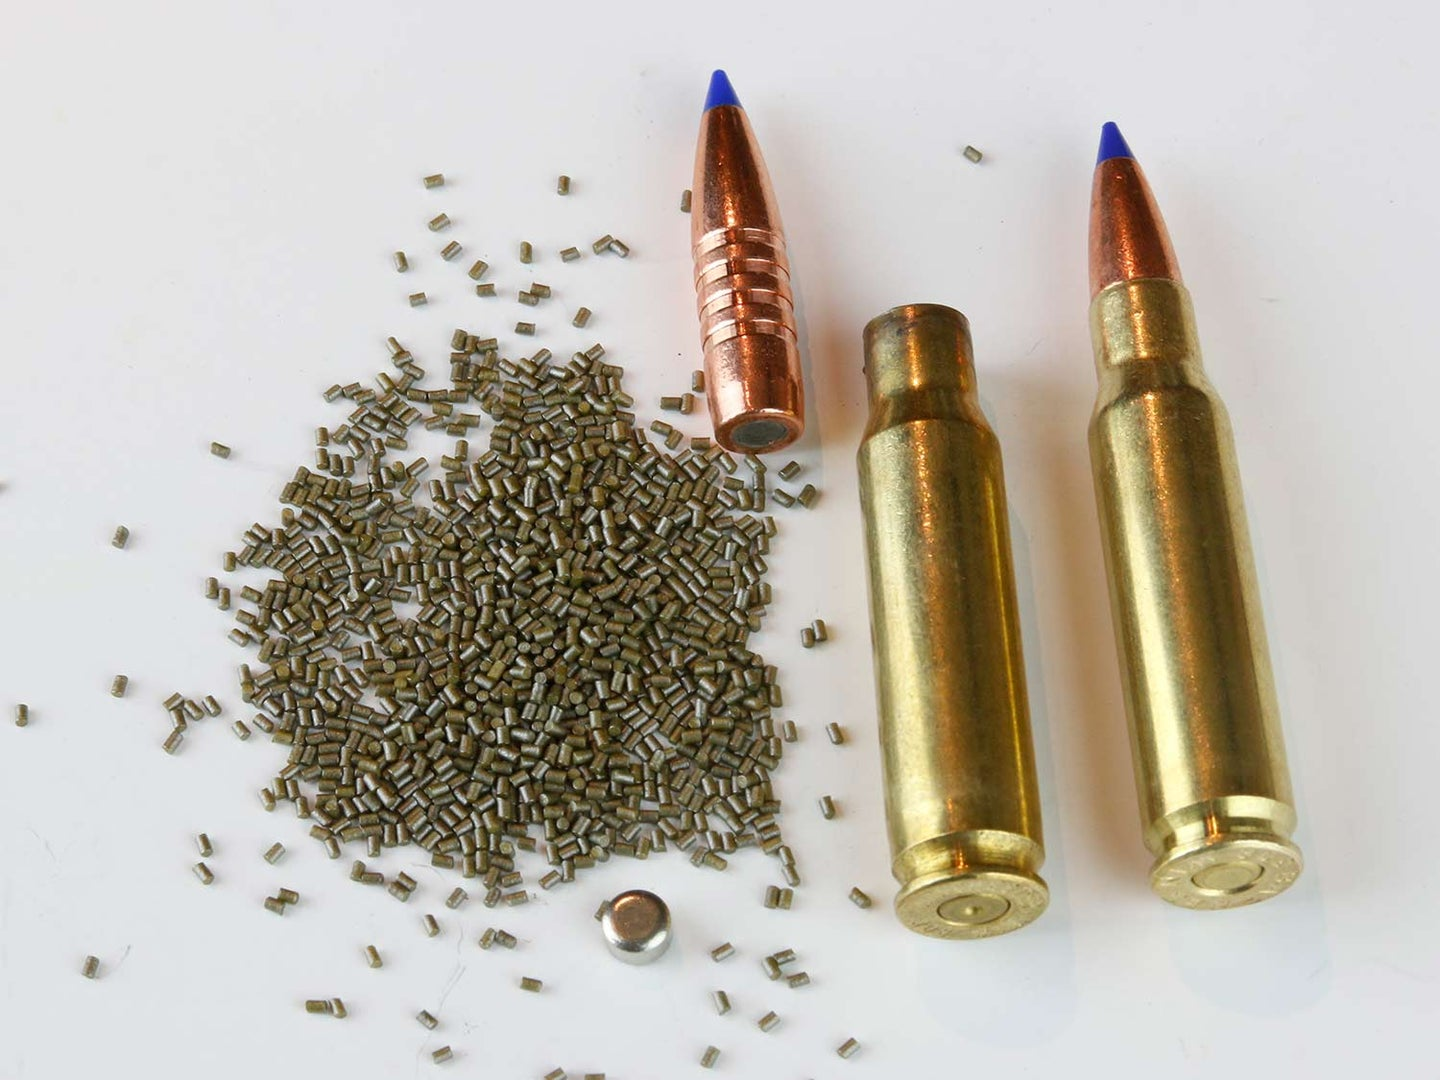 A rifle cartridge next to an emptied cartridge and bullet and gunpowder.